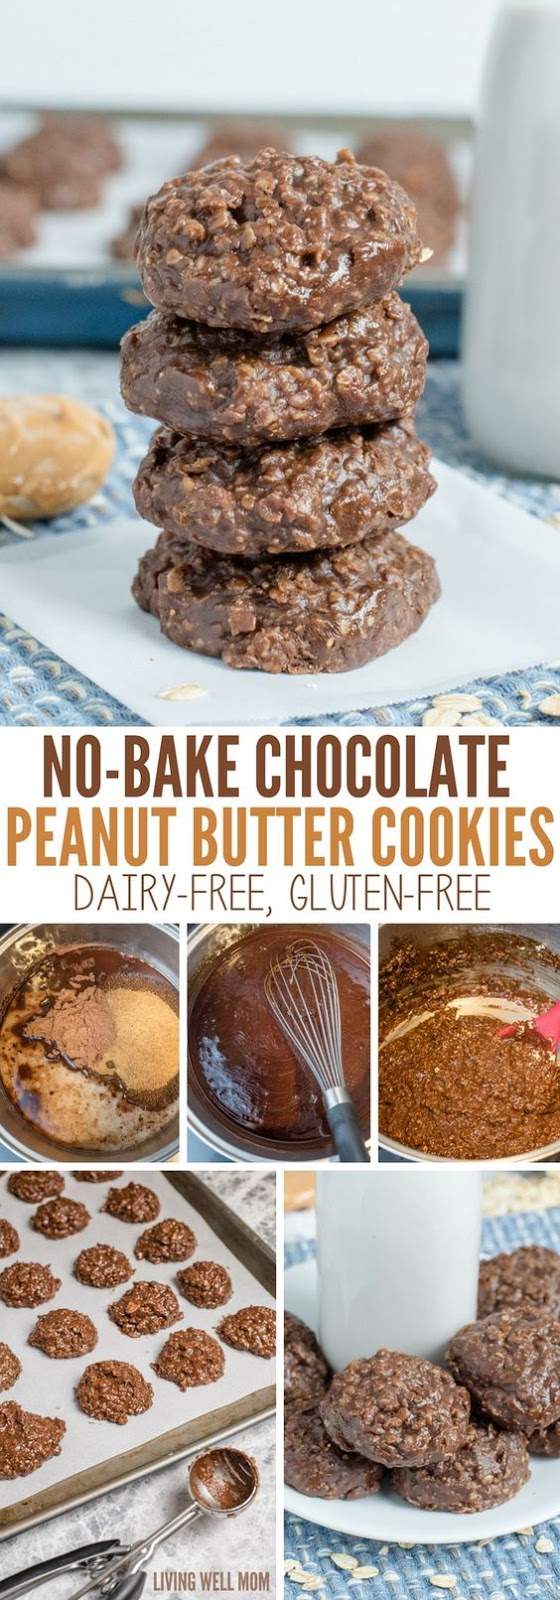 DAIRY-FREE NO-BAKE CHOCOLATE PEANUT BUTTER COOKIES